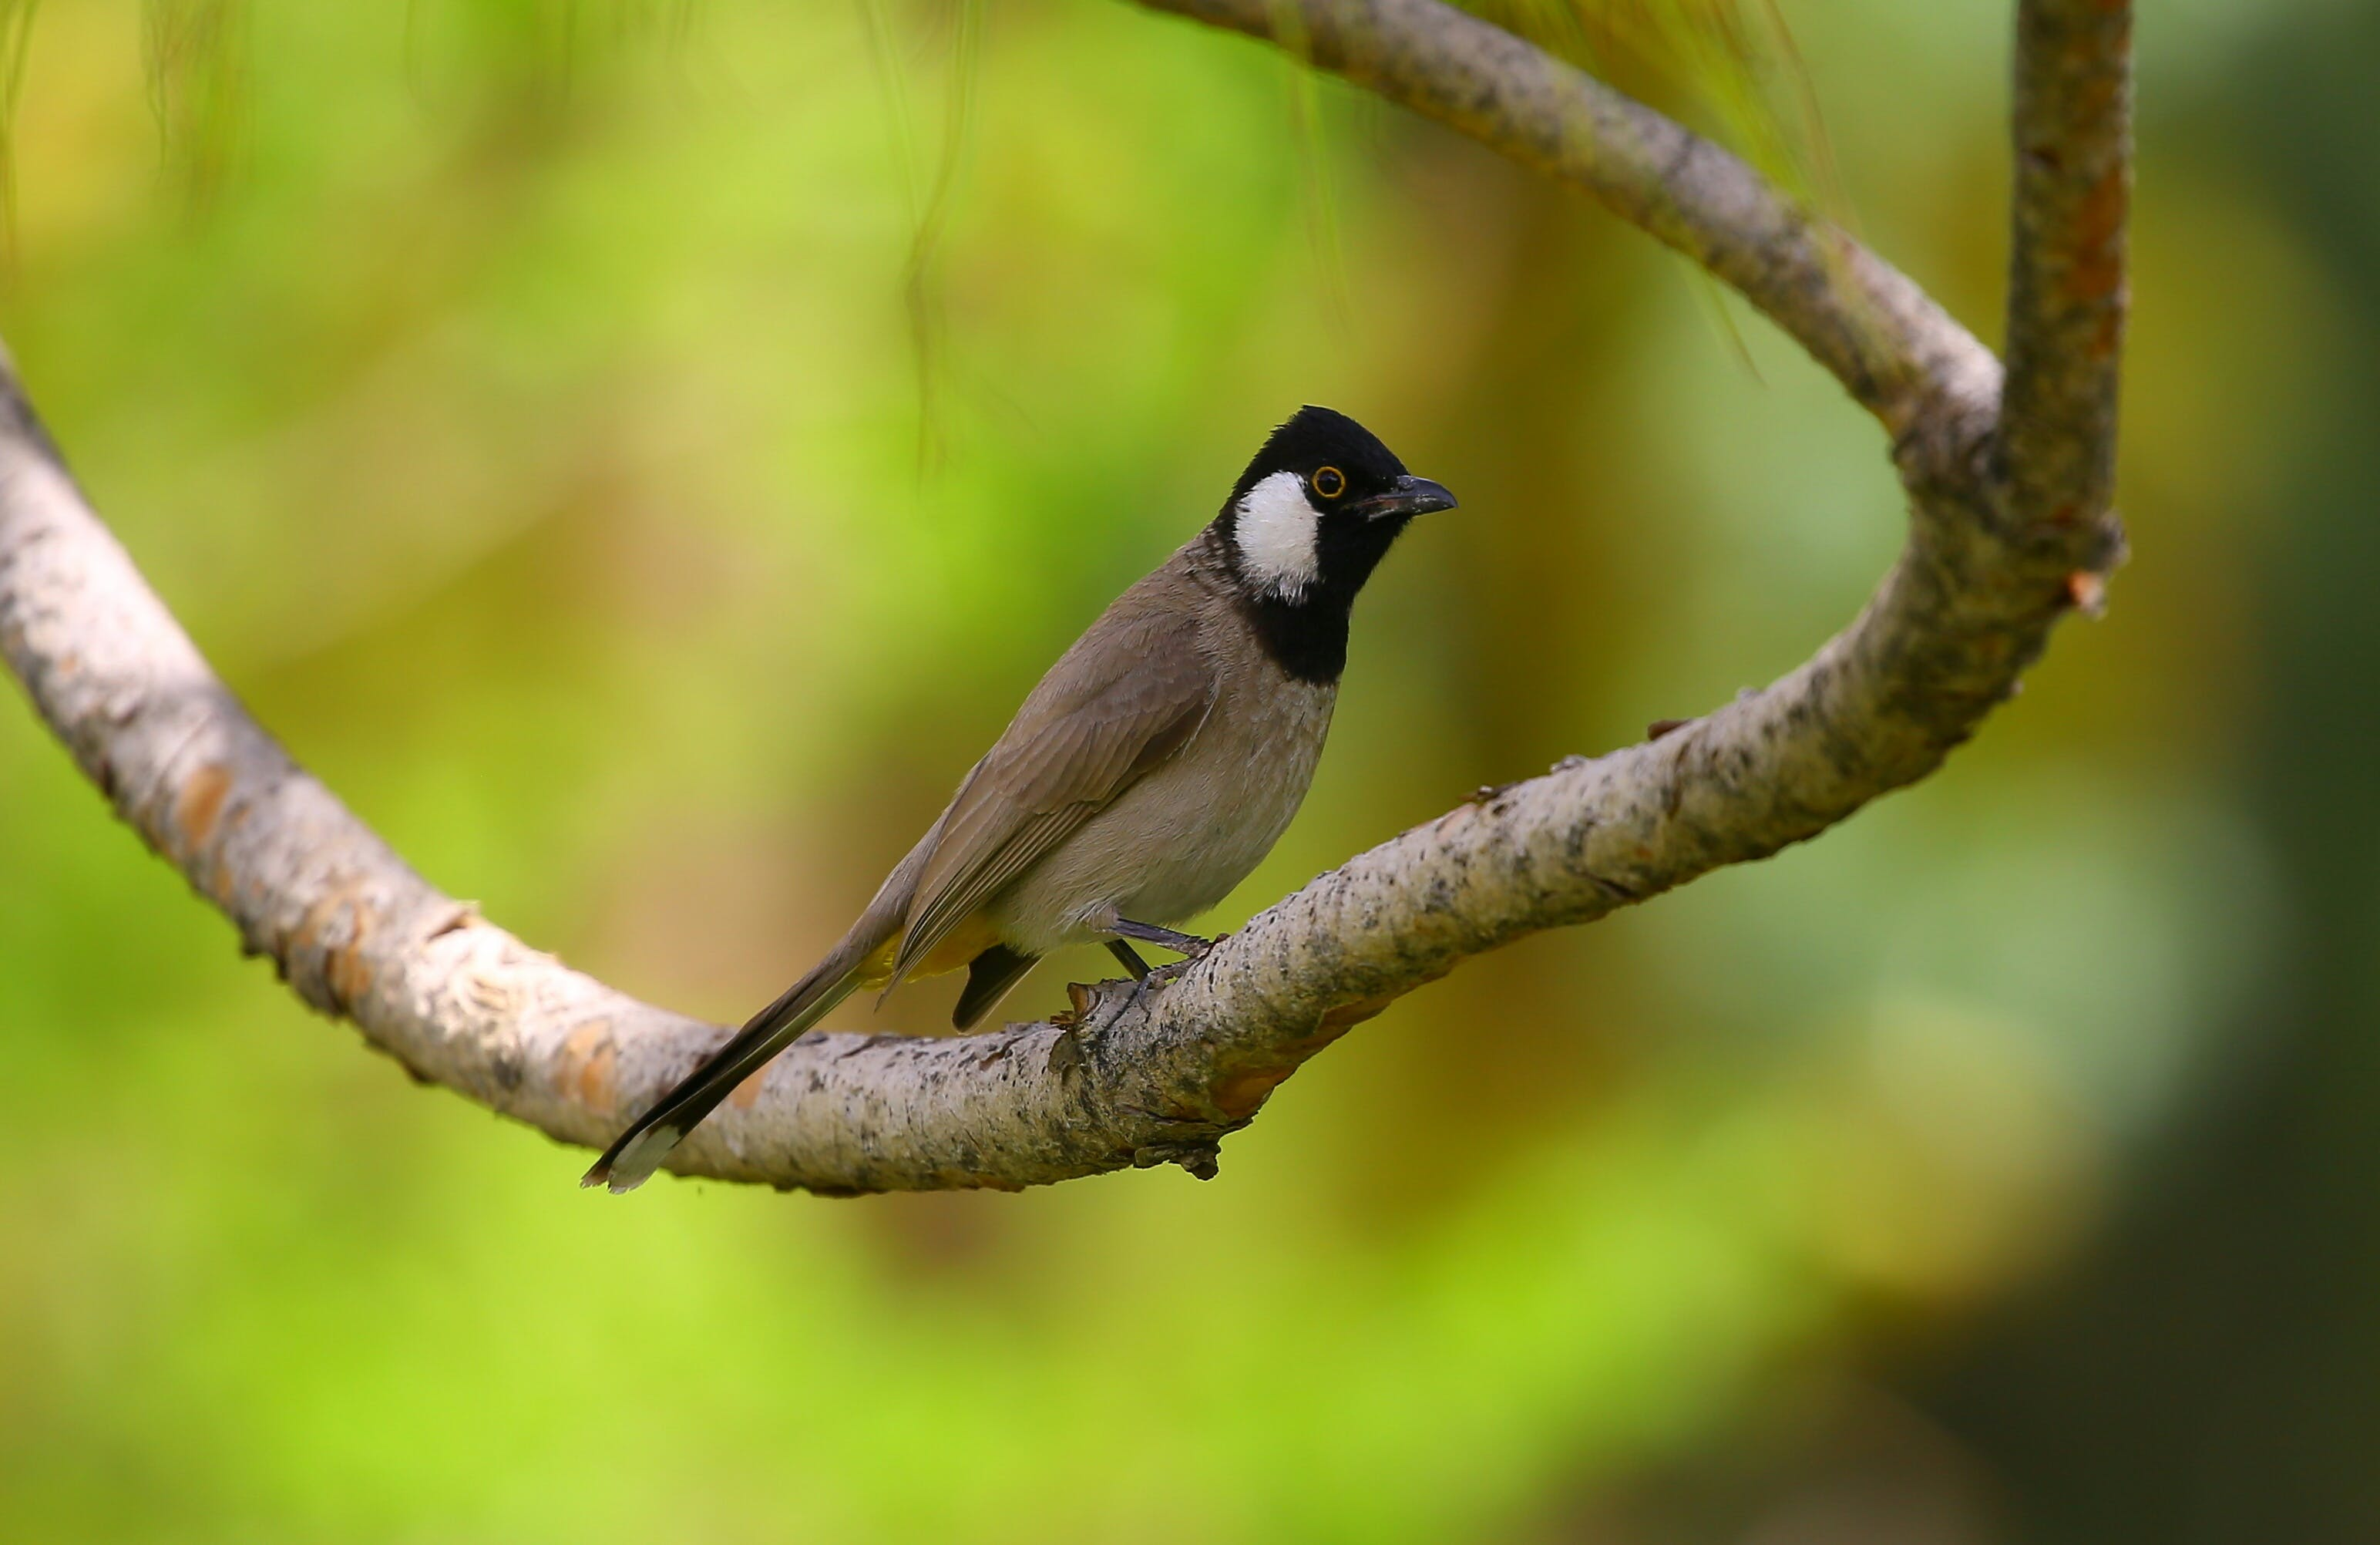 Brown and Black Bird on Tree Trunk